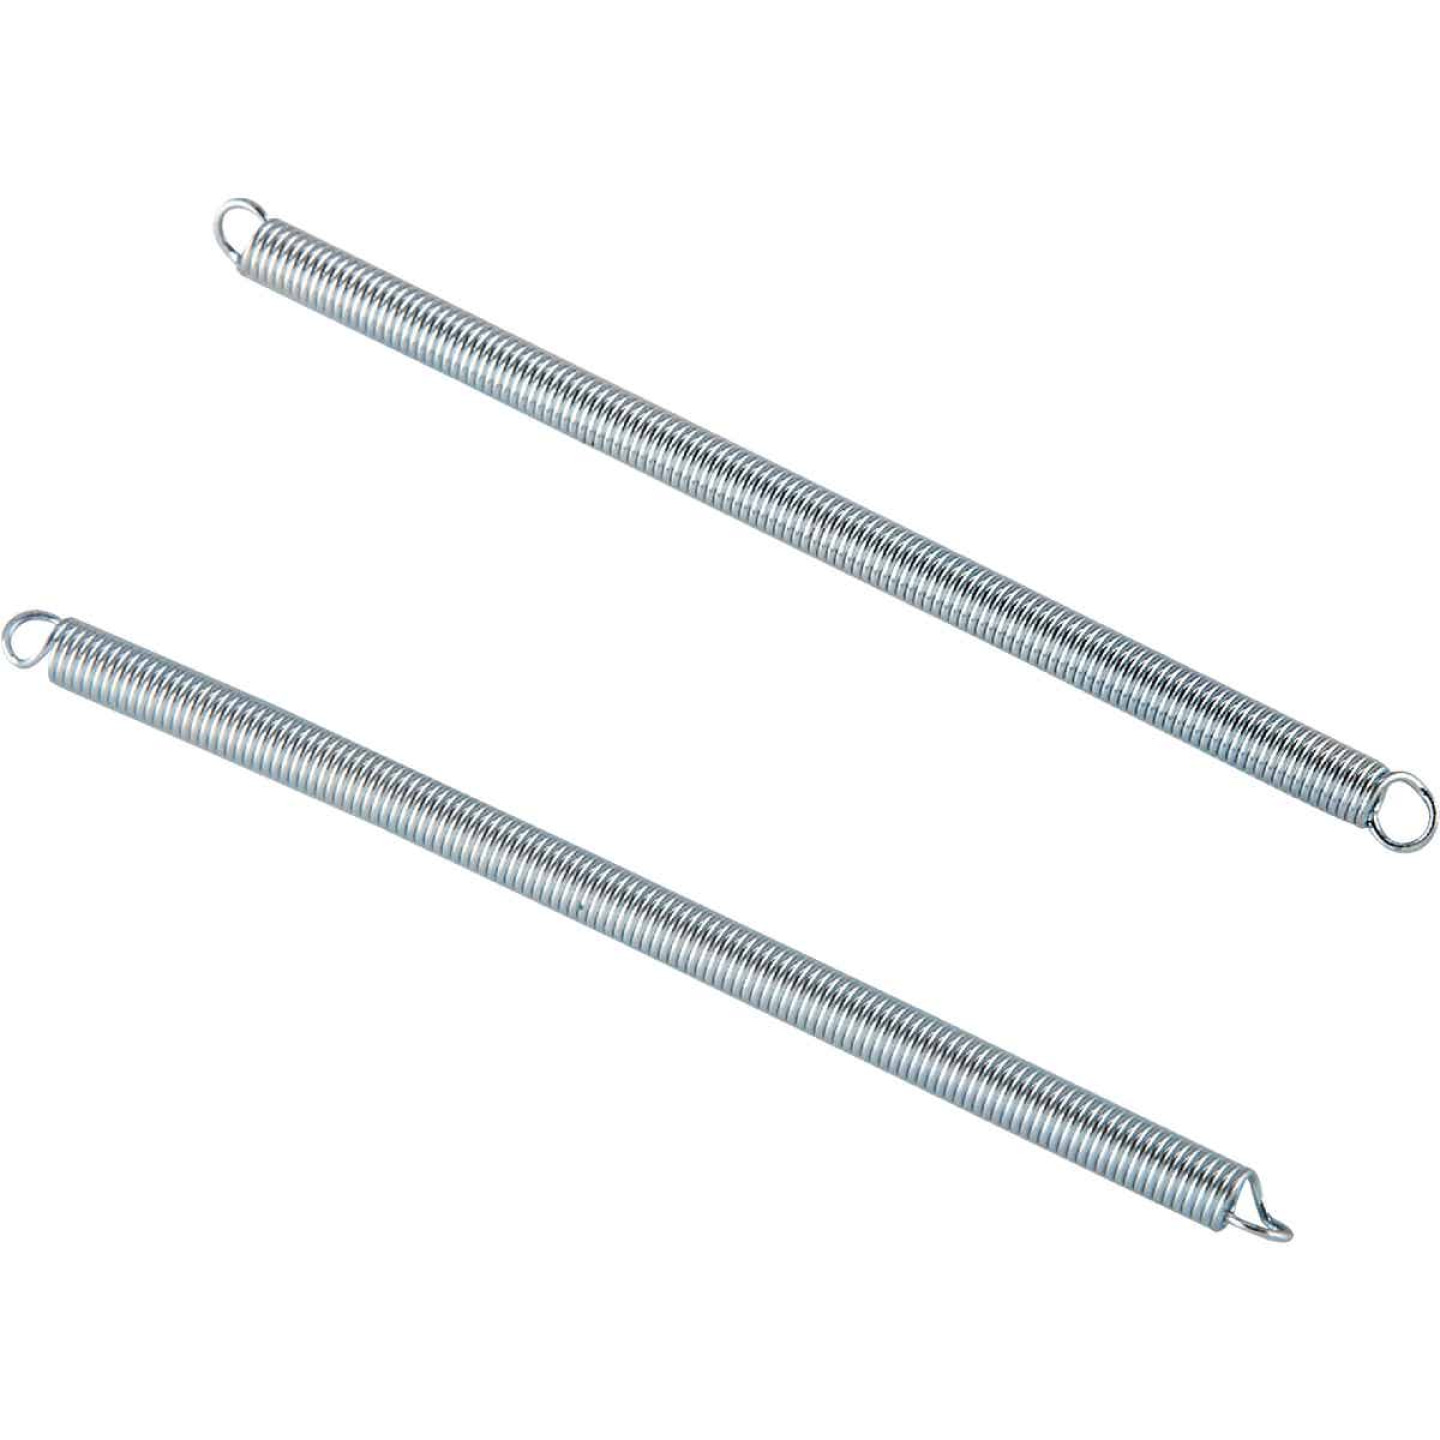 Century Spring 2-1/2 In. x 7/16 In. Extension Spring (2 Count) Image 1